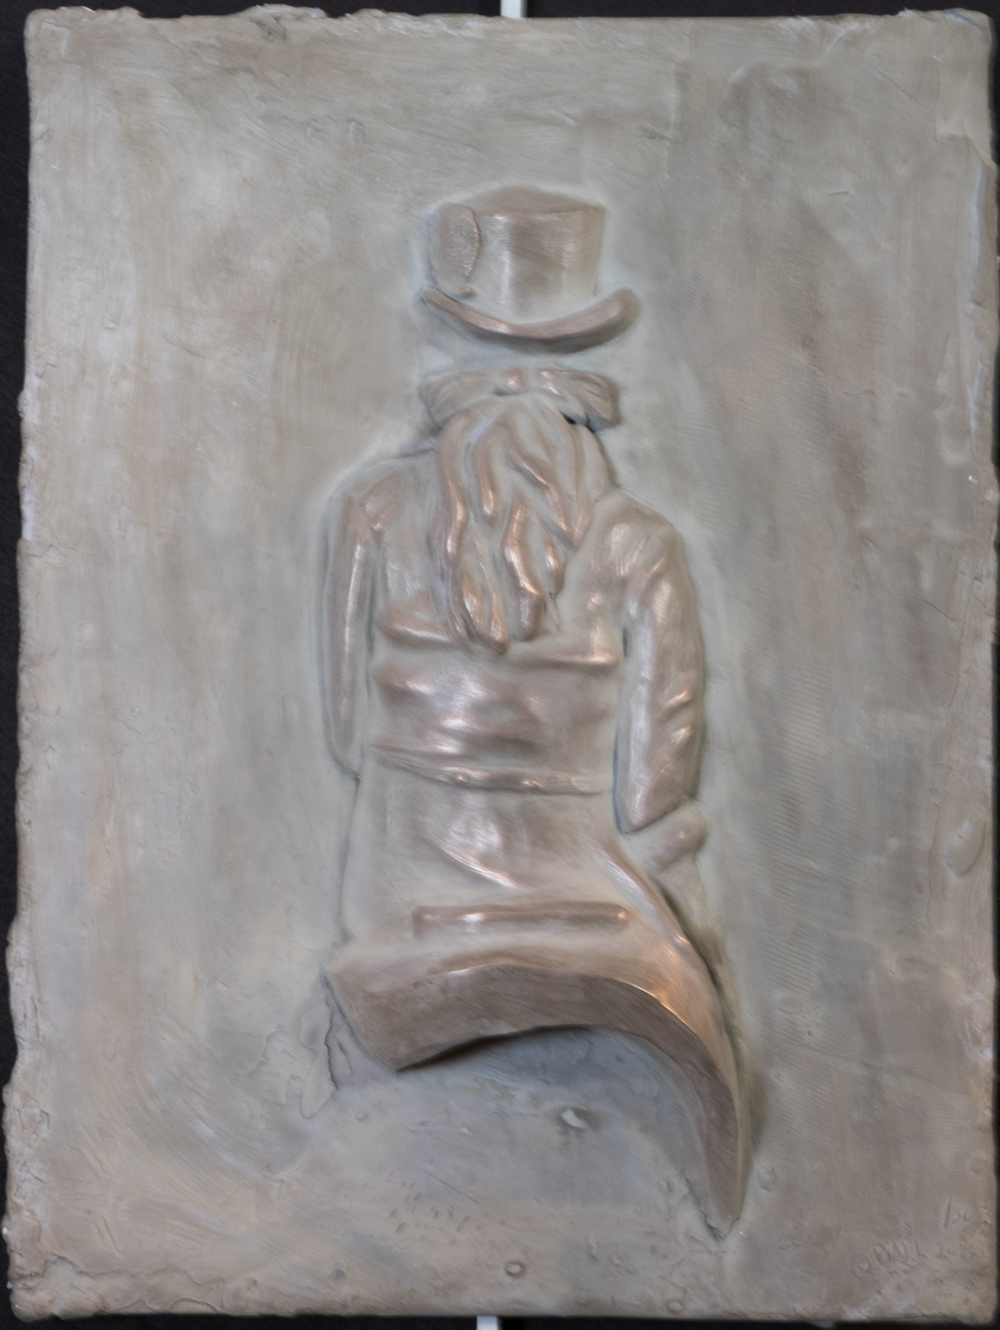 Le Steeple sur la Selle de Femme (2015) FMG Bronze, Edition: 30, 16x12x.25in. $1,900